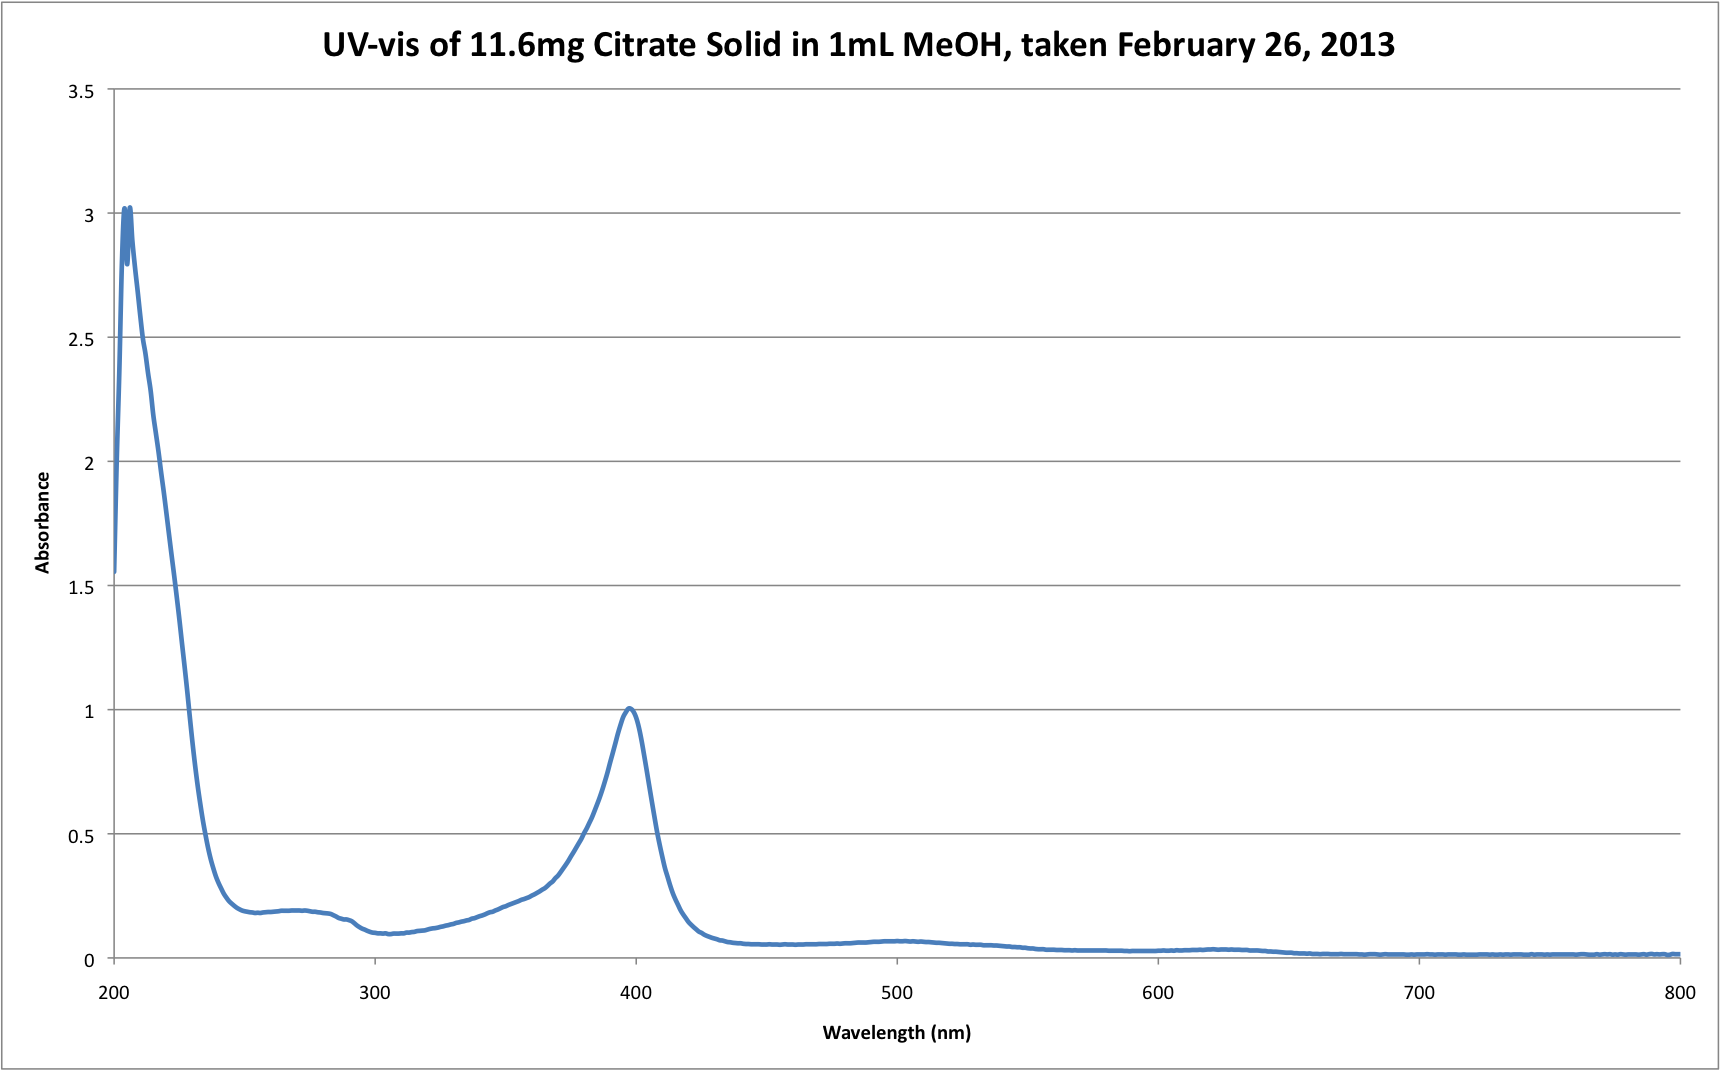 UV-vis of 11.6mg Citrate Solid in 1mL MeOH, taken February 26, 2013.png